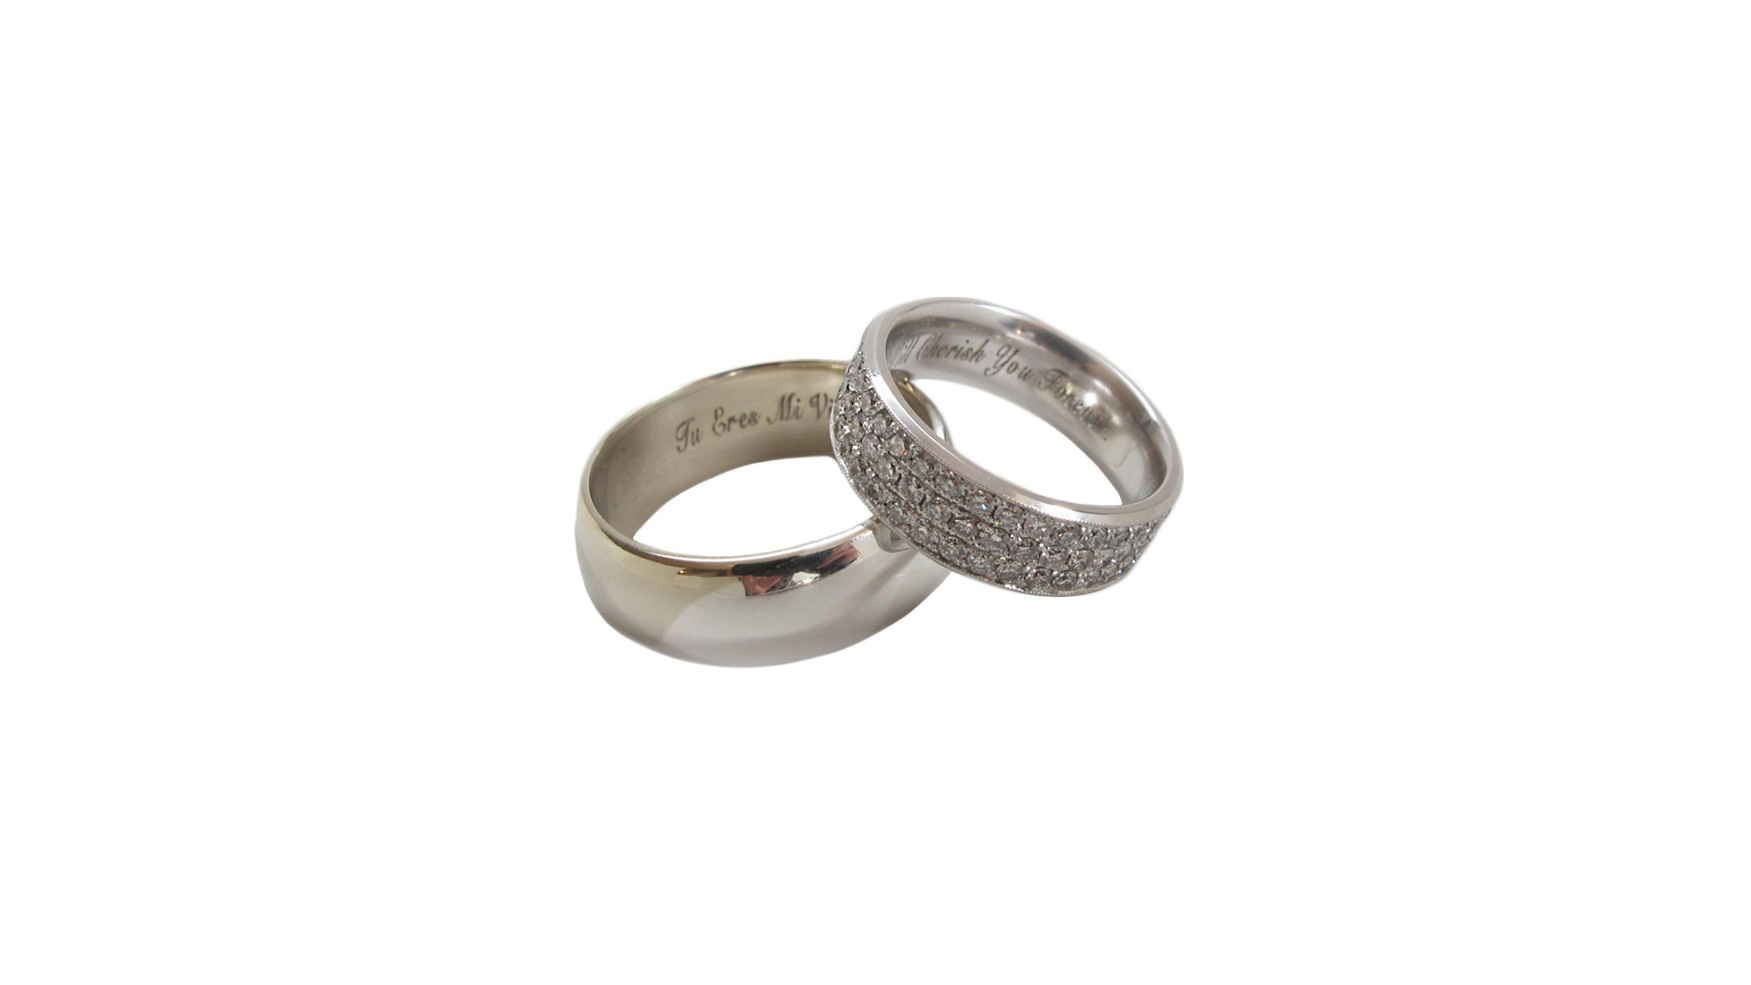 Abe-Mixed Metal 14k White Gold + Platinum Band    Erica-14k White Gold Flat Band with 3 Rows of Micro Pavé